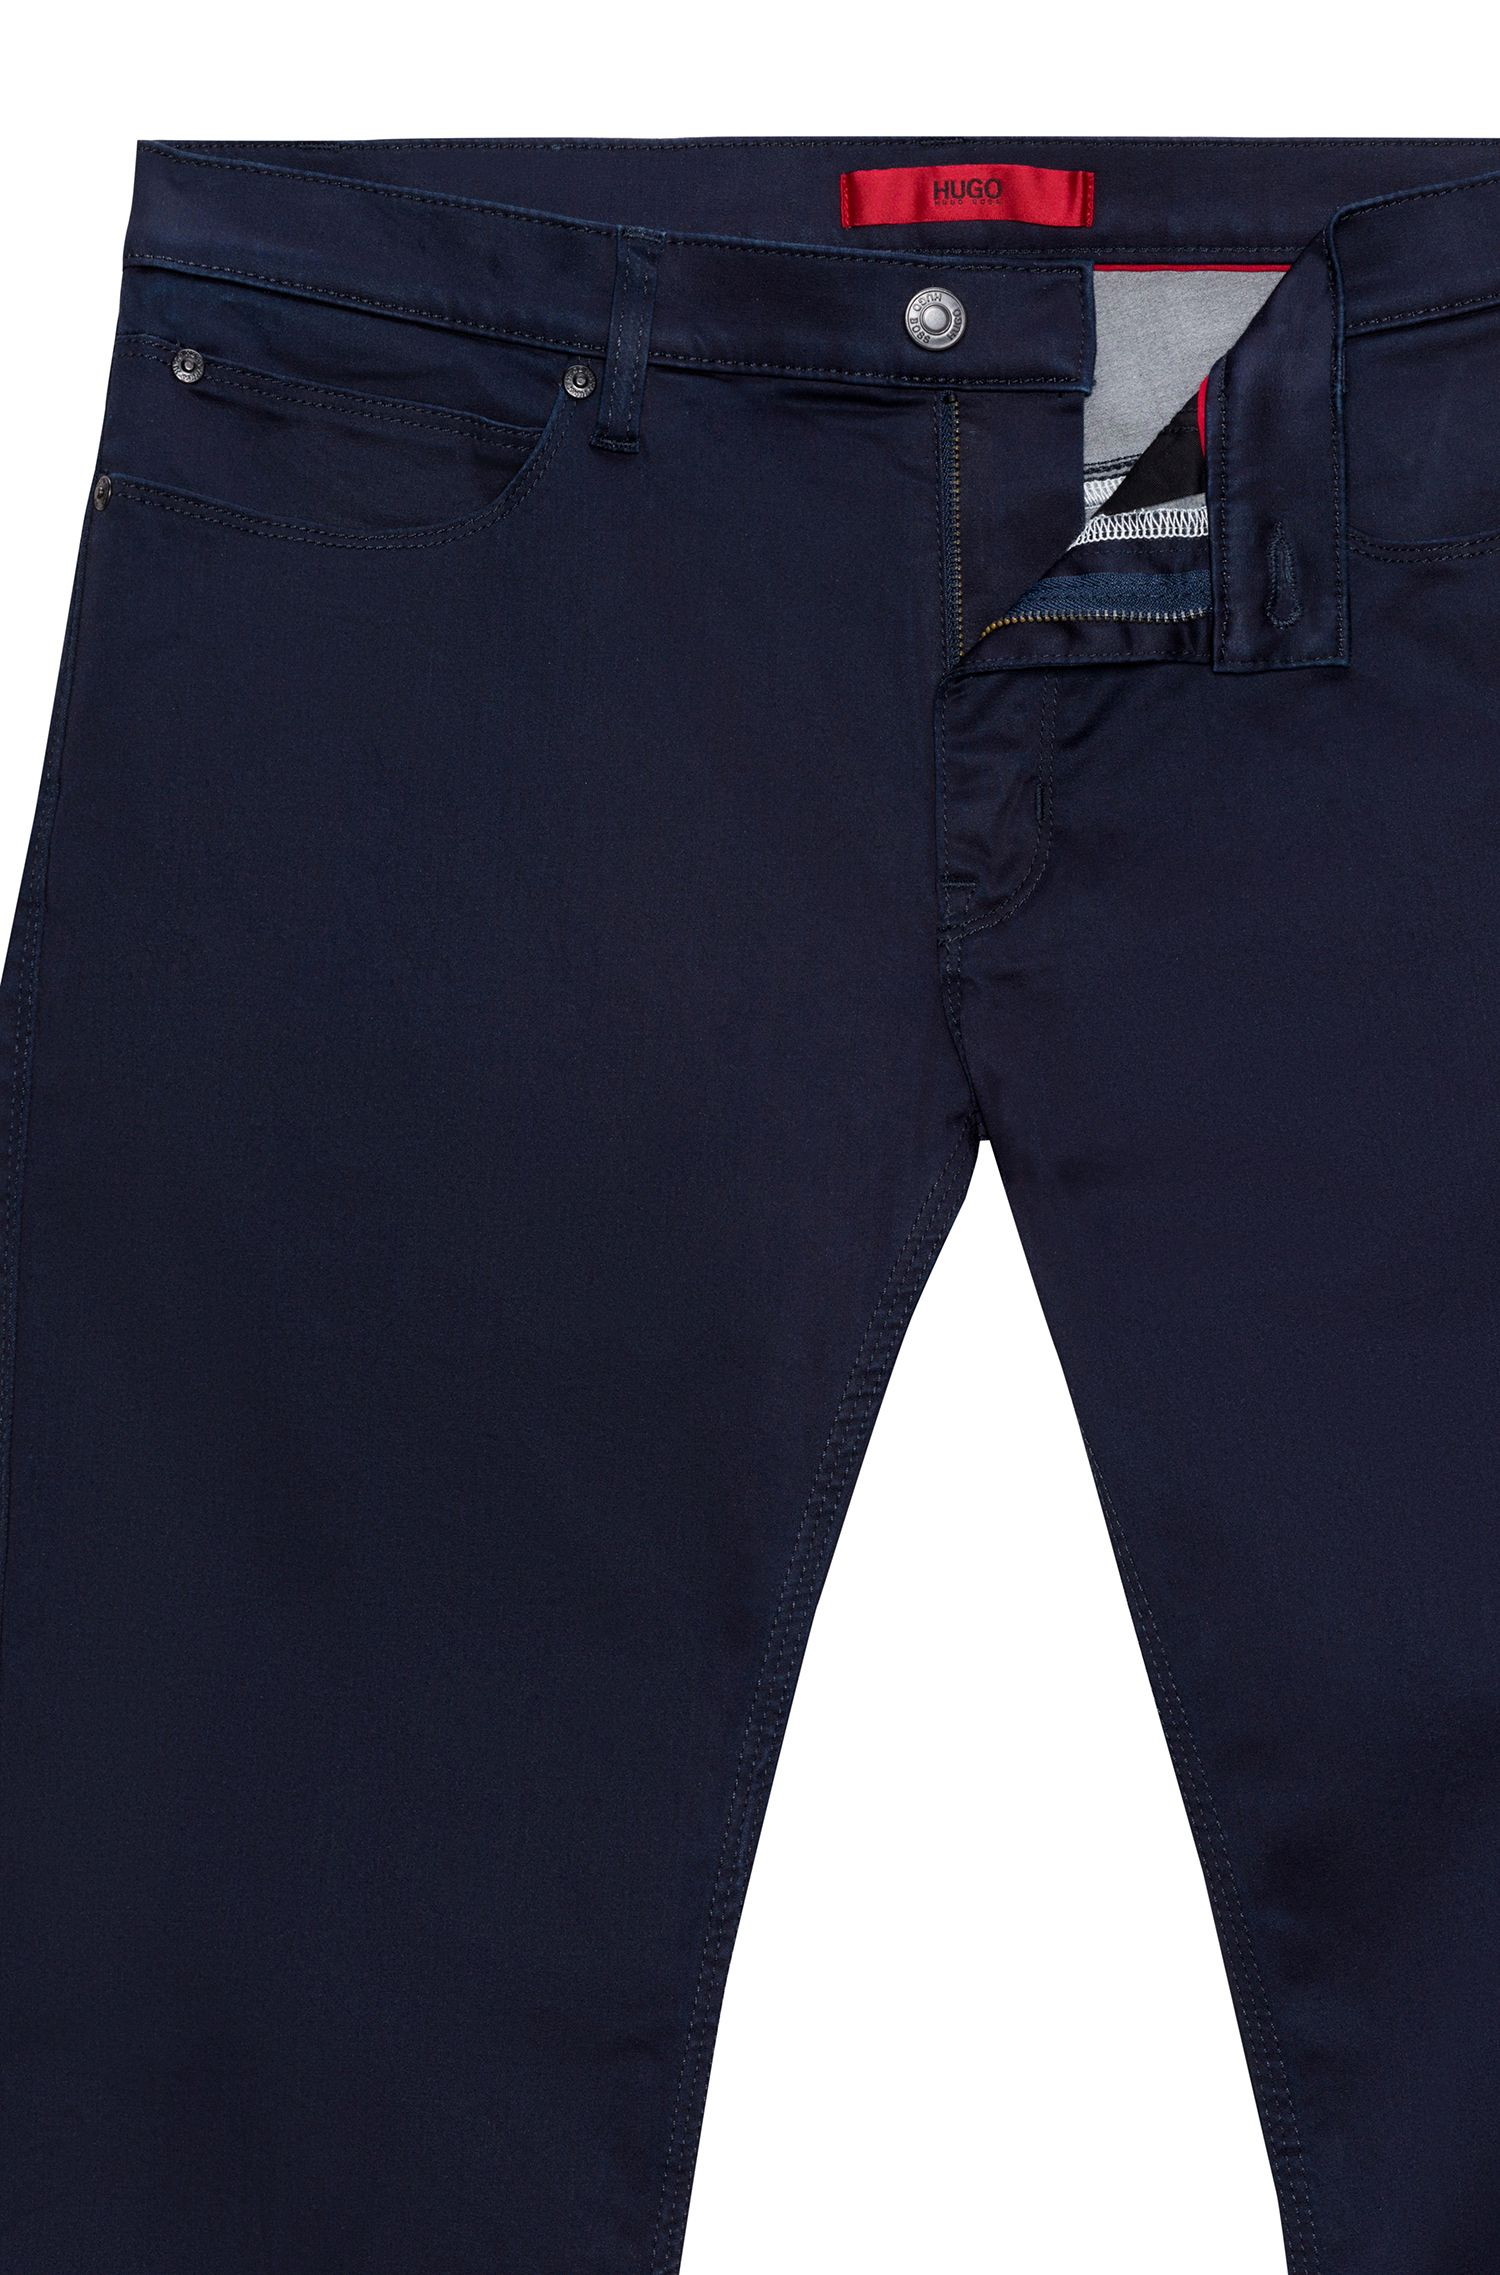 Cotton Blend Pant, Slim Fit | Hugo 708, Dark Blue